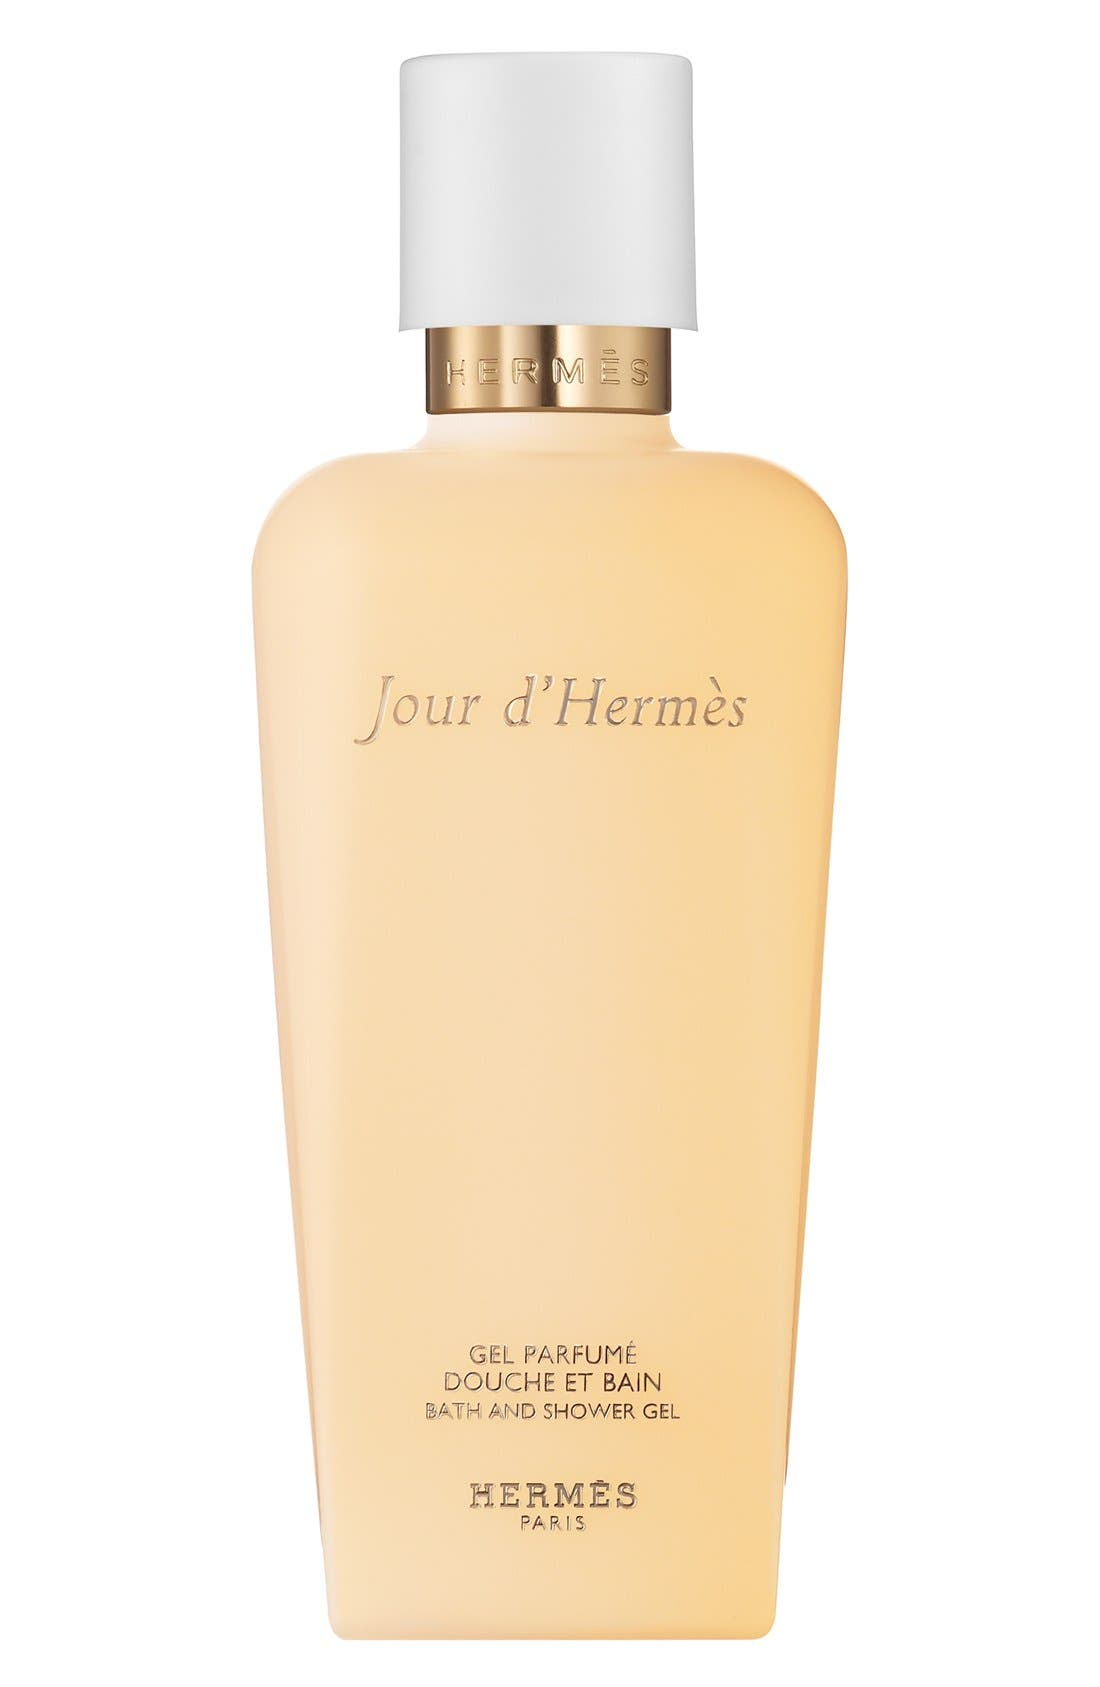 Hermès Jour d'Hermès - Perfumed bath and shower gel